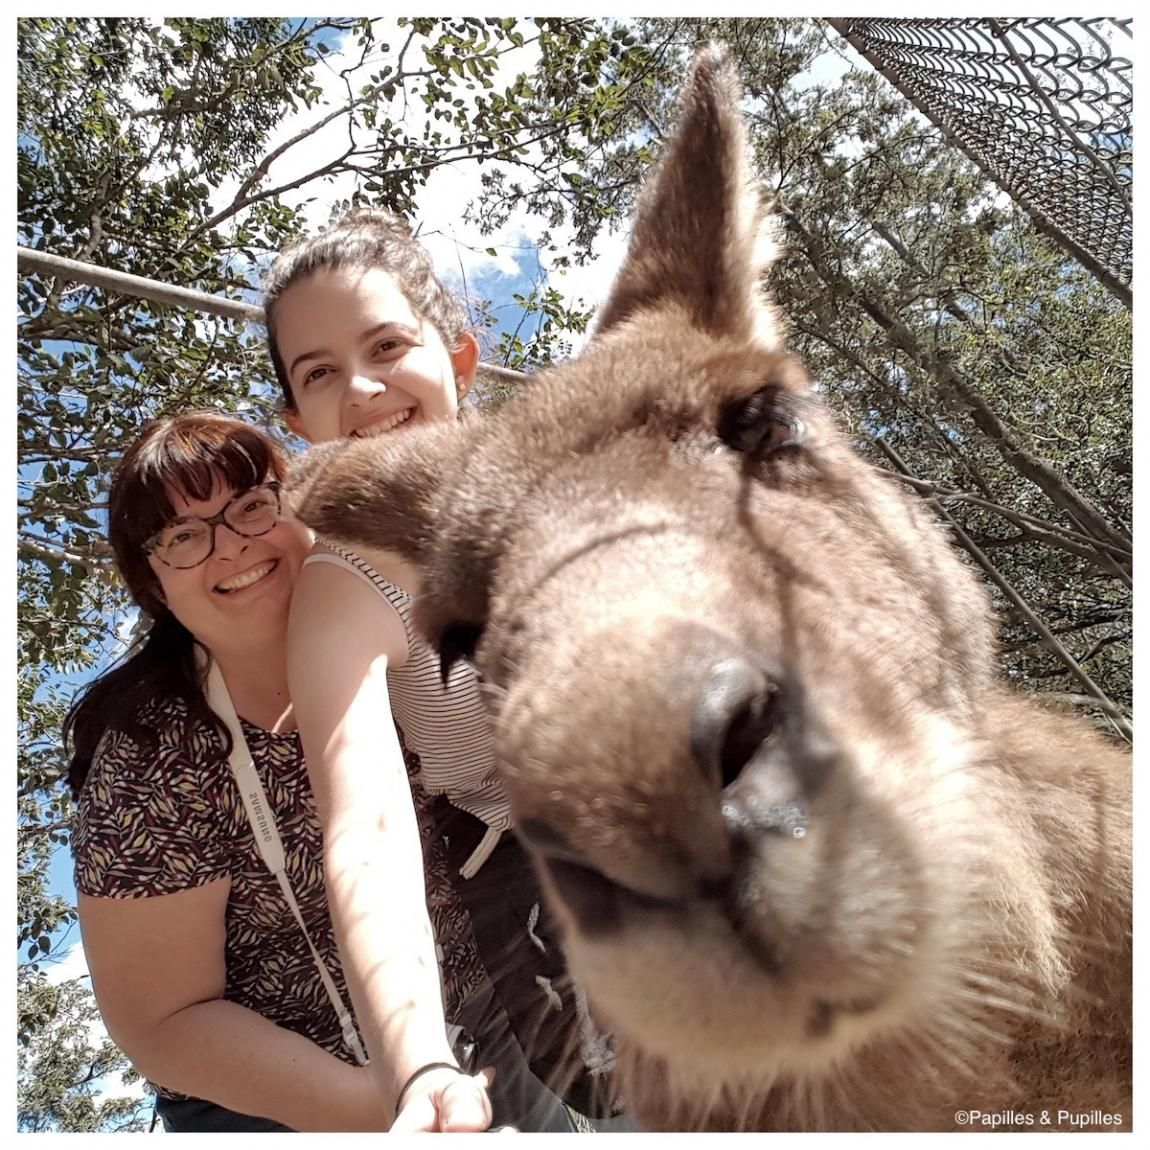 Kangourou Photo Bombing Brisbane Australie Animals Brisbane